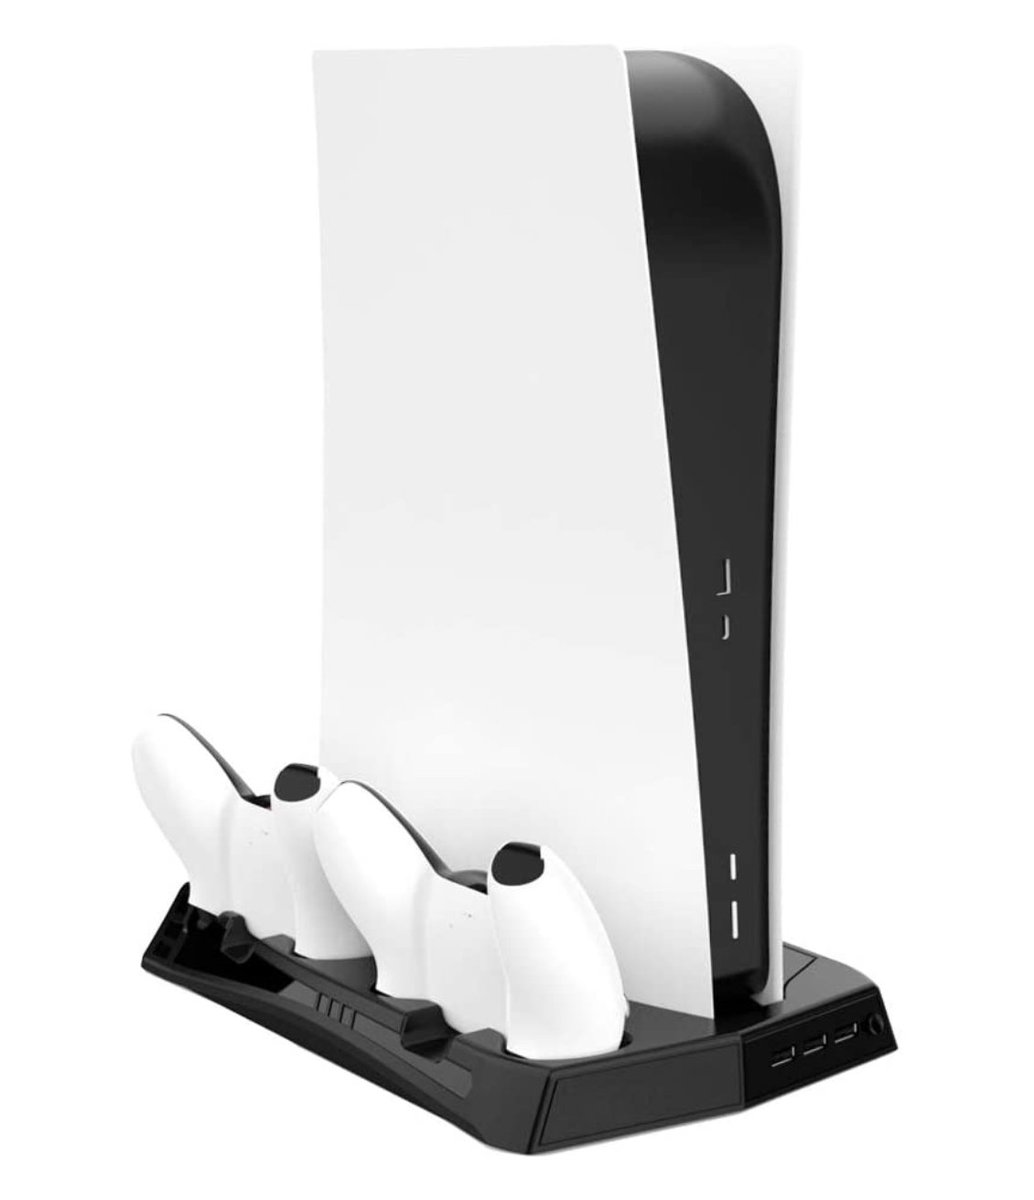 PS5 Vertical Stand, Black Fits both PS5 models $18.99 Amazon